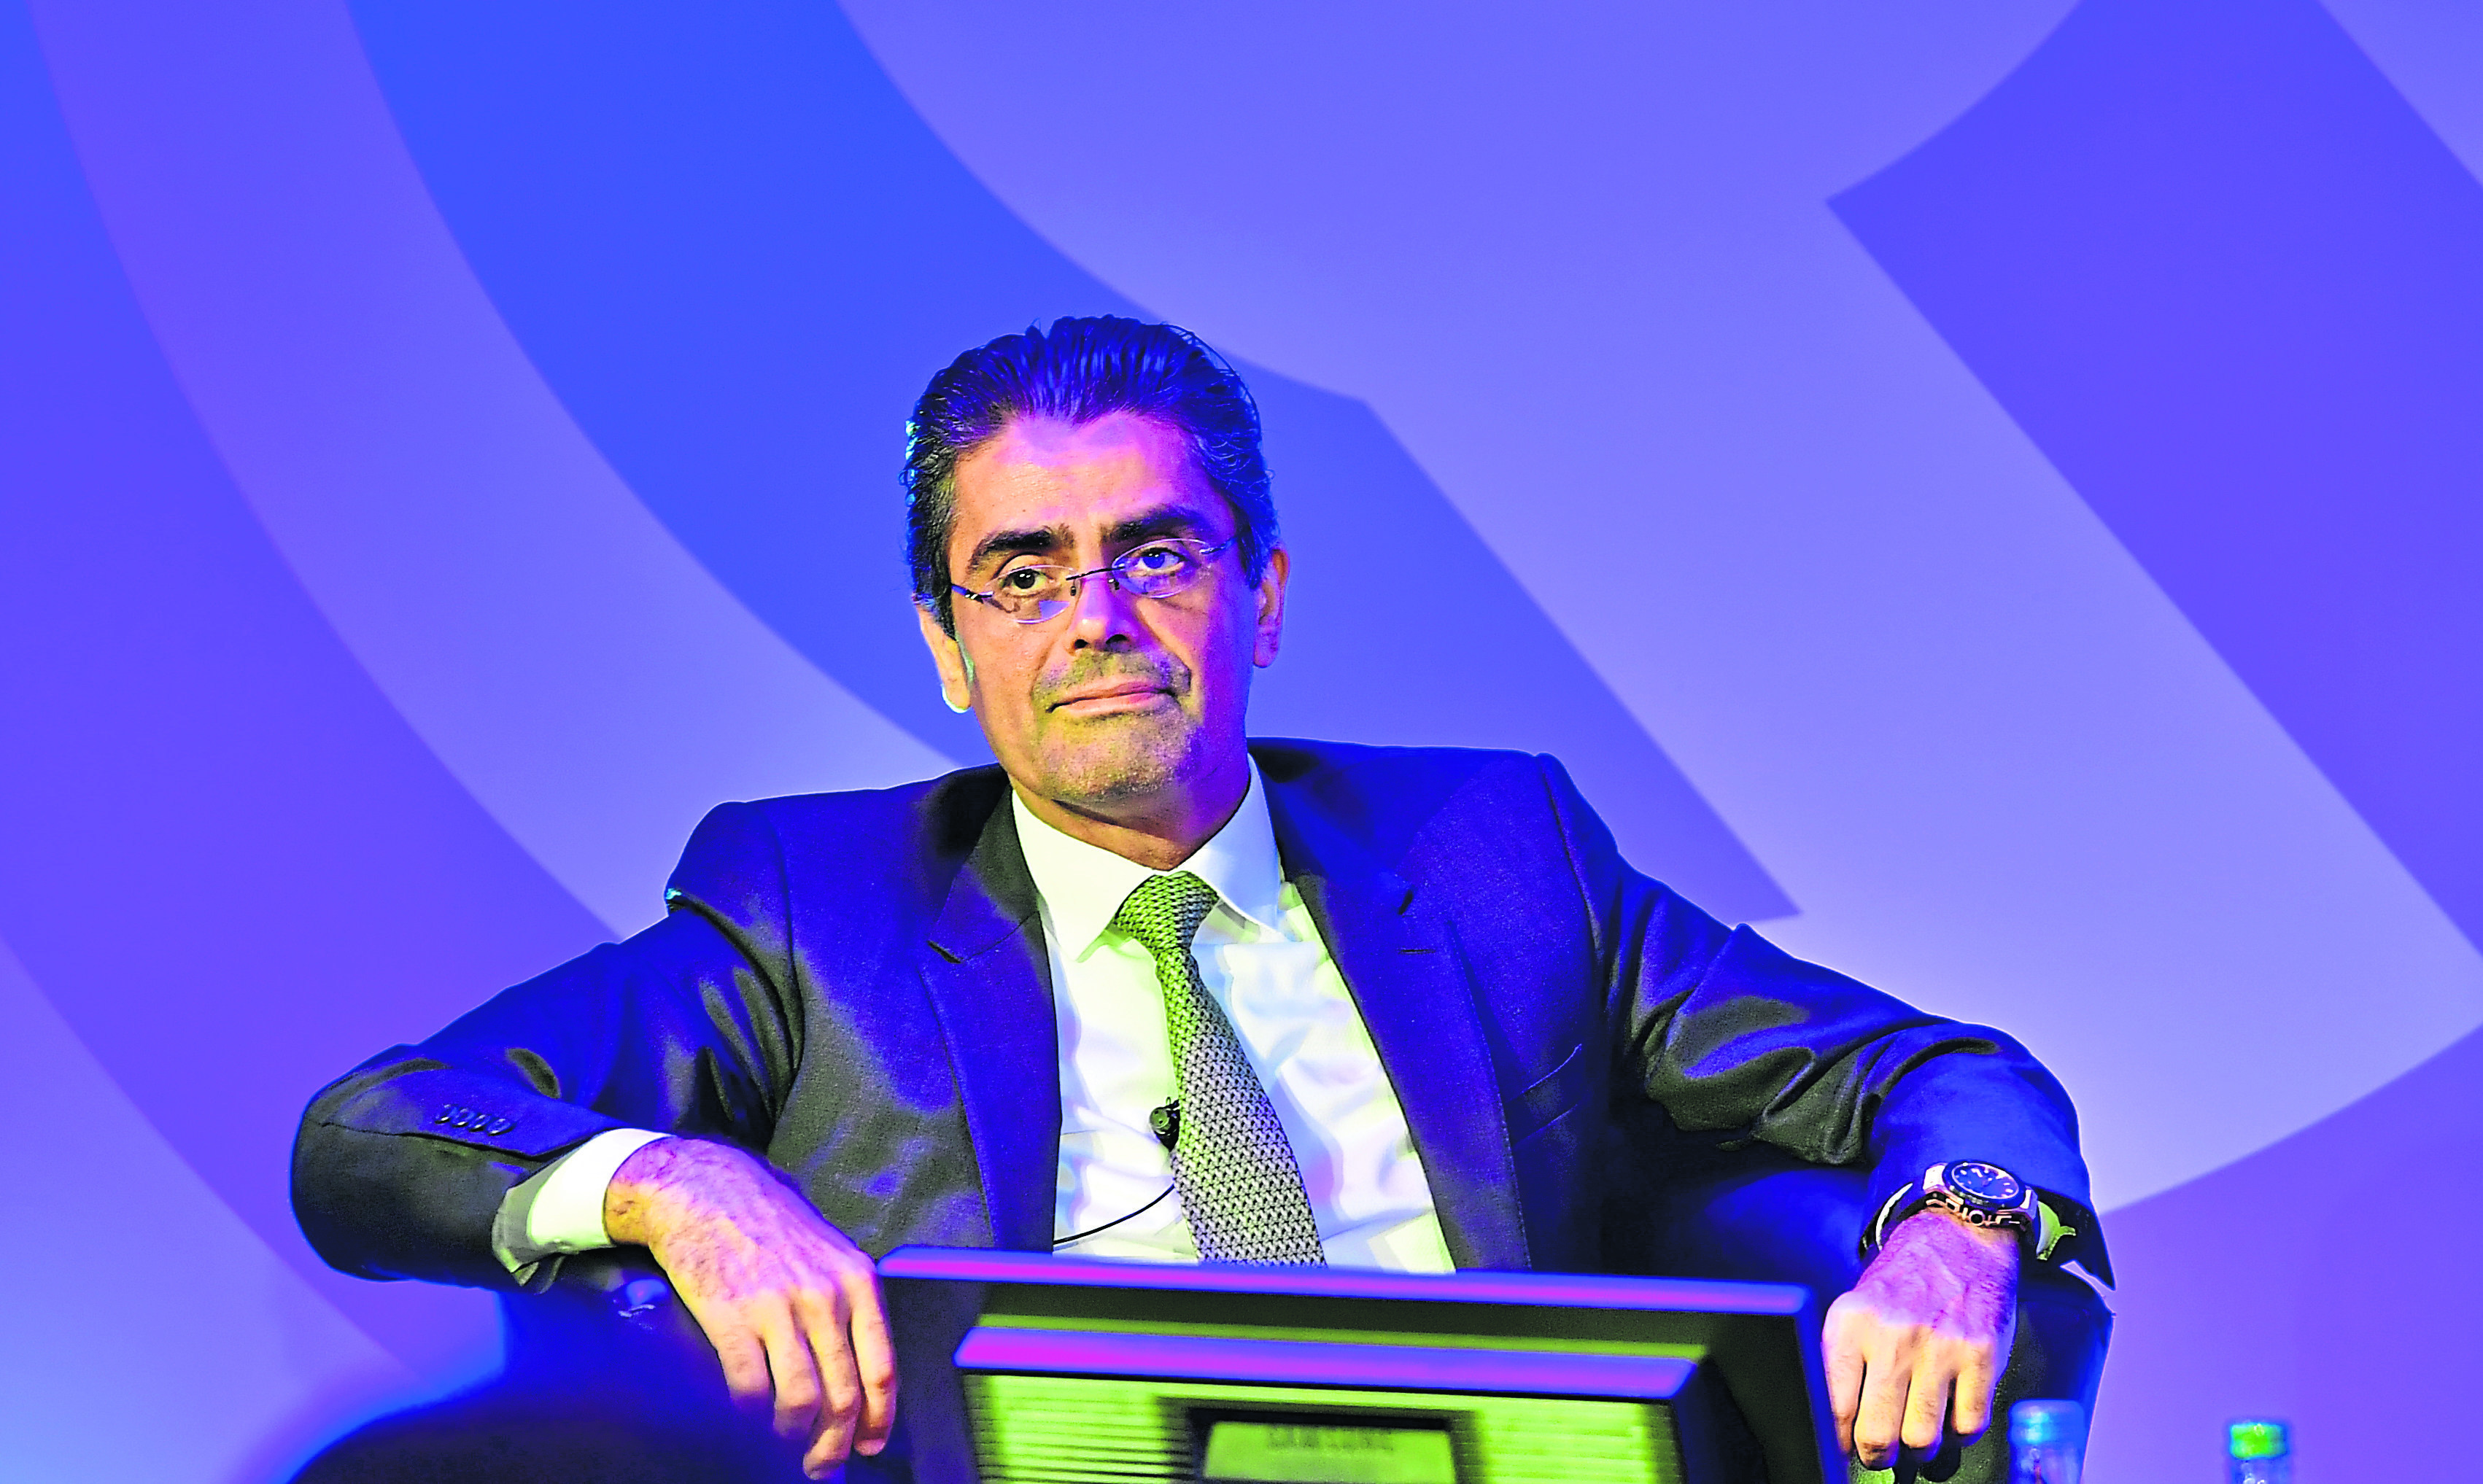 EnQuest chief executive Amjad Bseisu